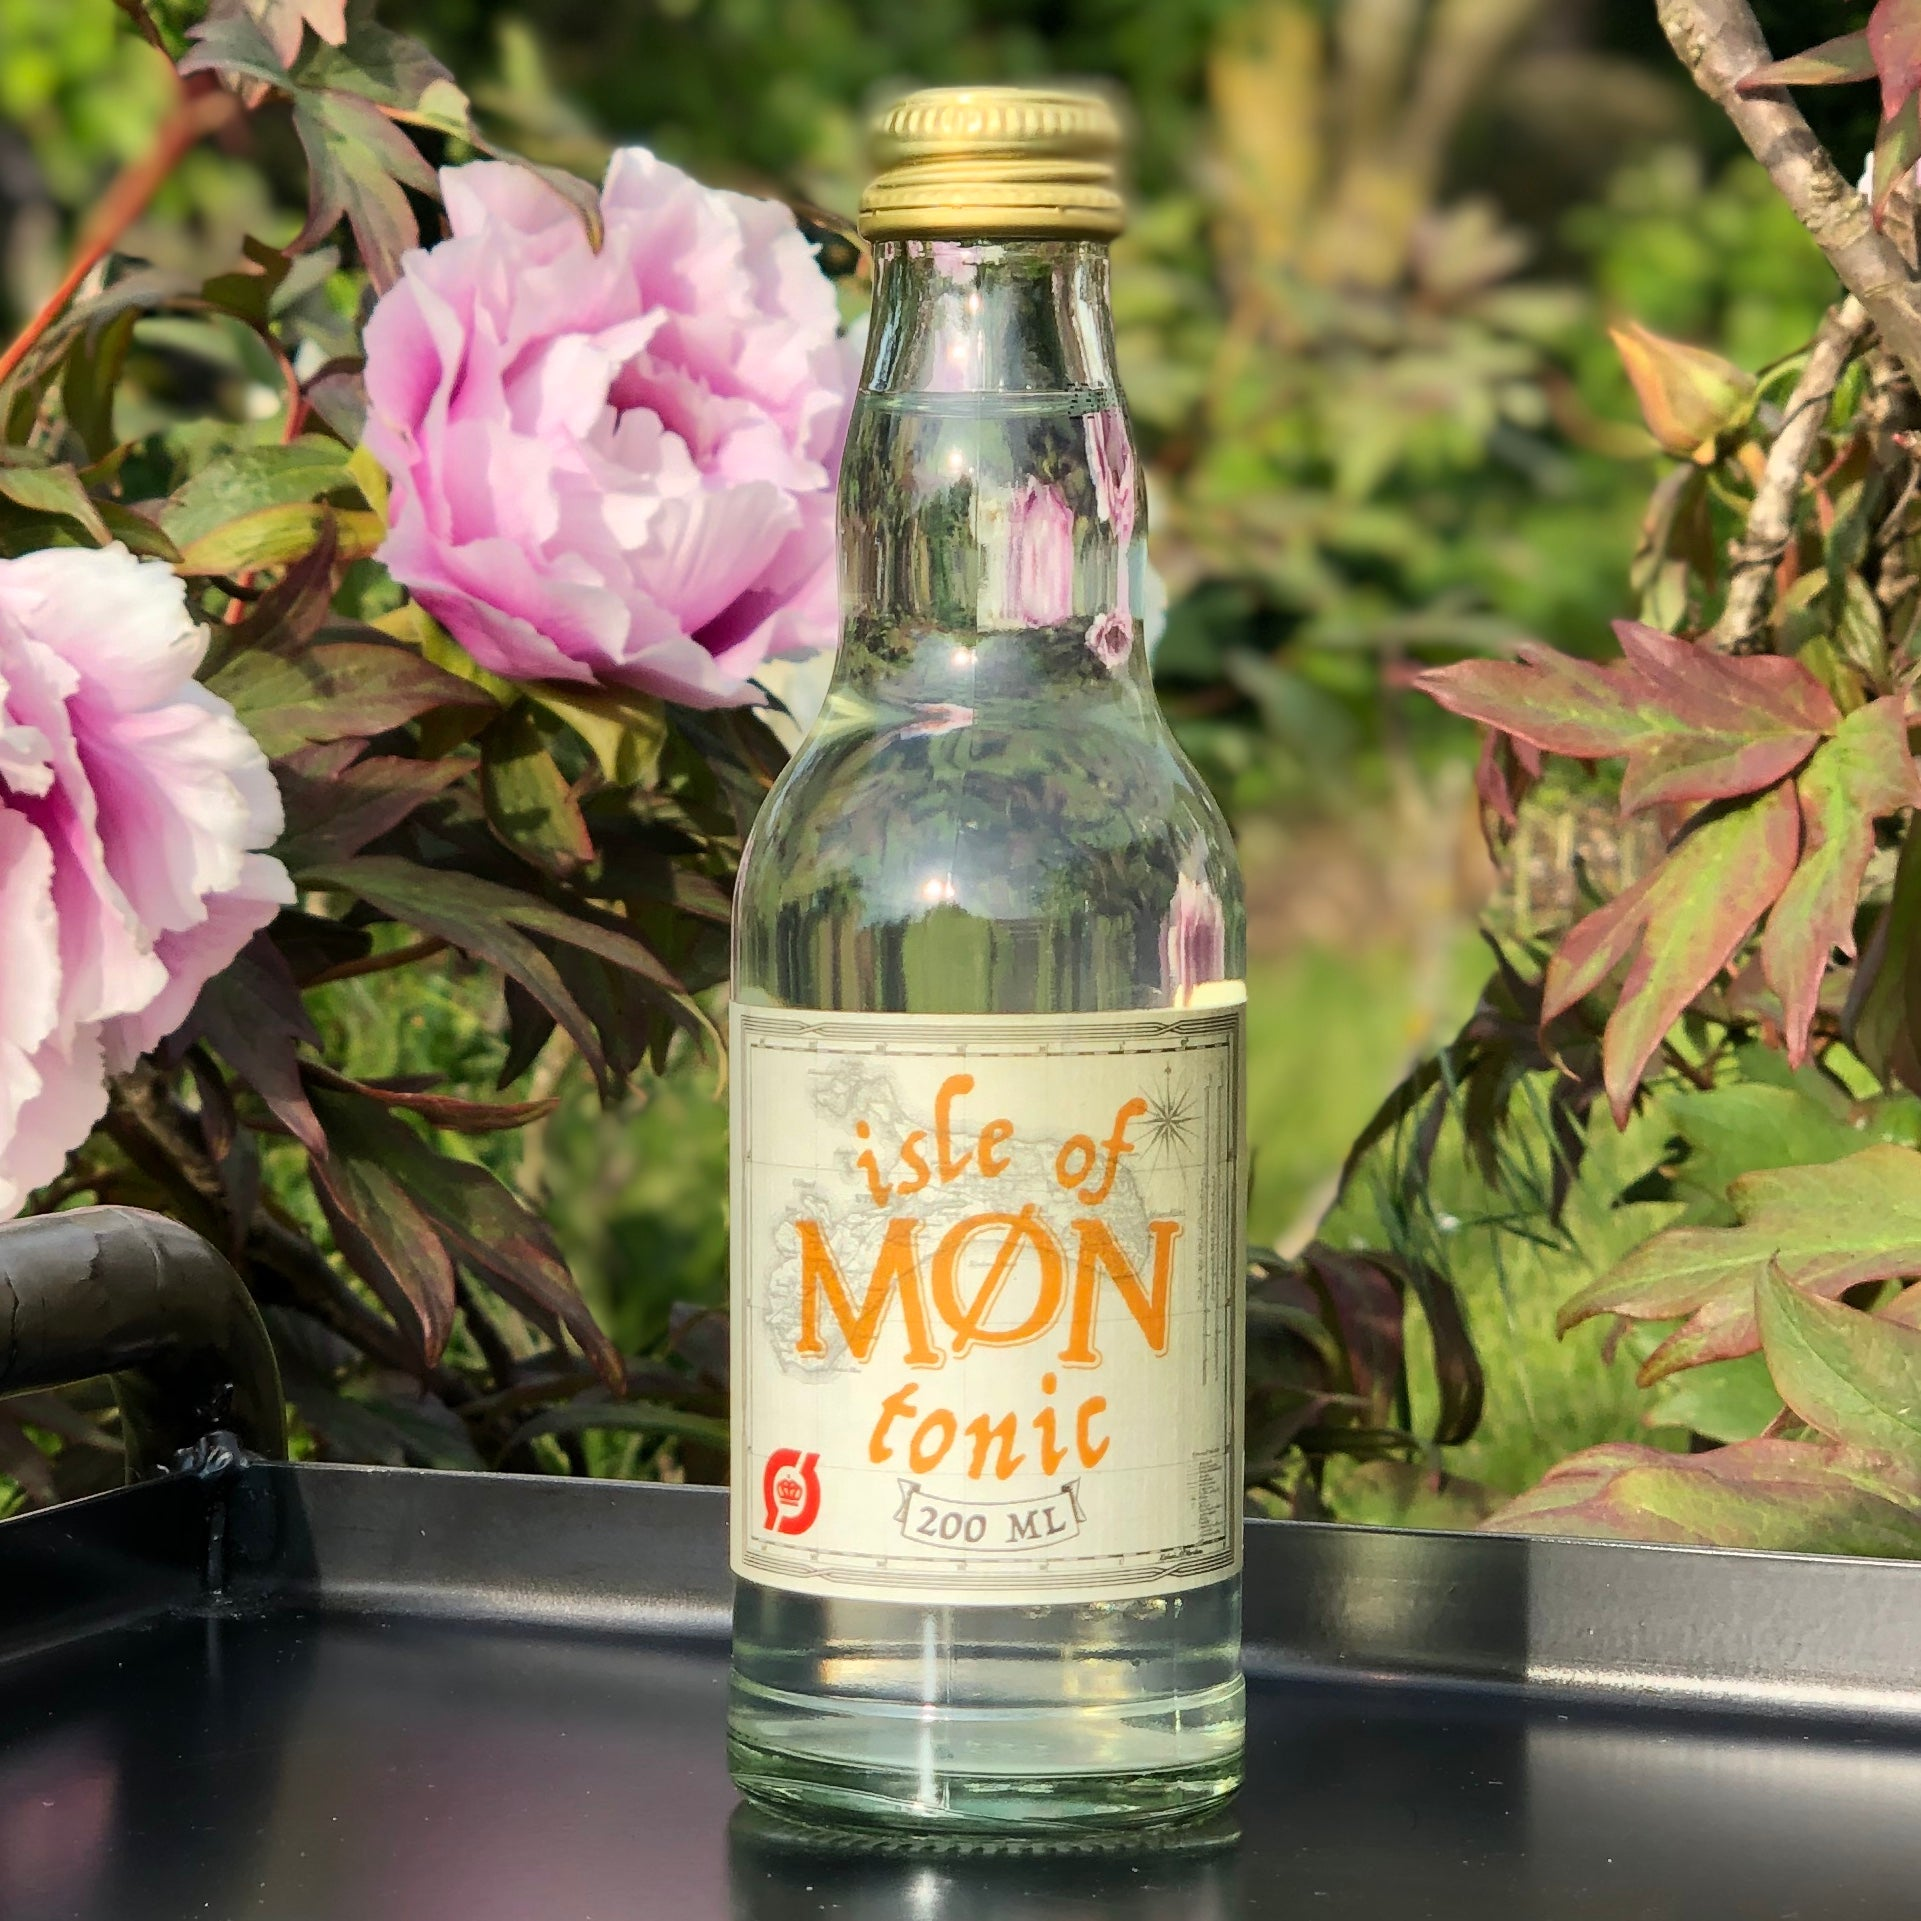 Isle of Møn Tonic - Isle of Møn Spirits